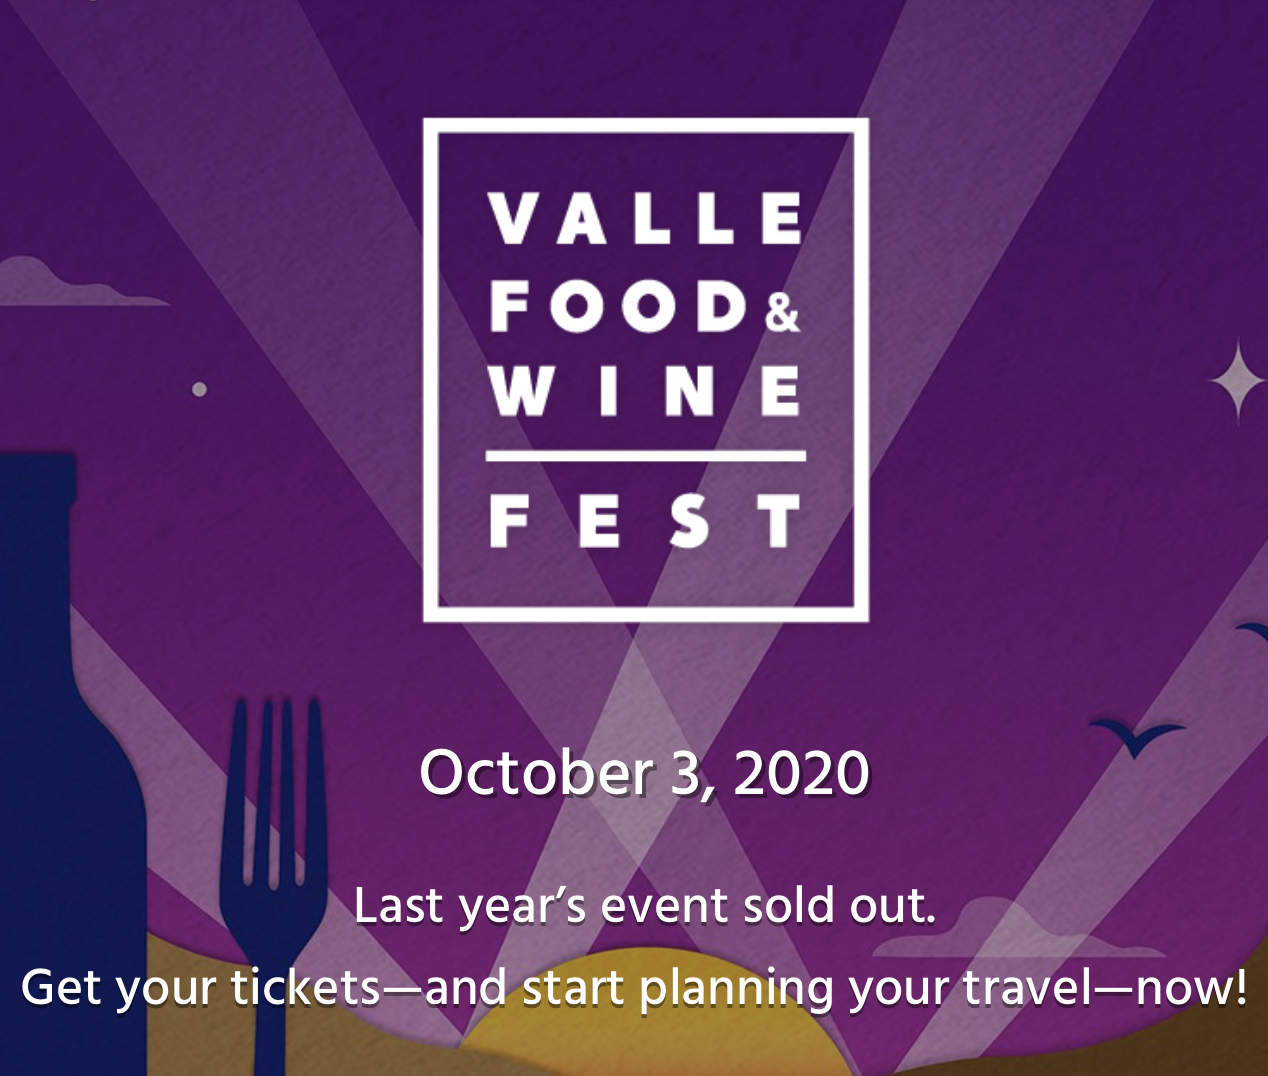 Promo code SDVILLE2020 saves 10% on passes to Valle Food & Wine Fest, taking place October 3!